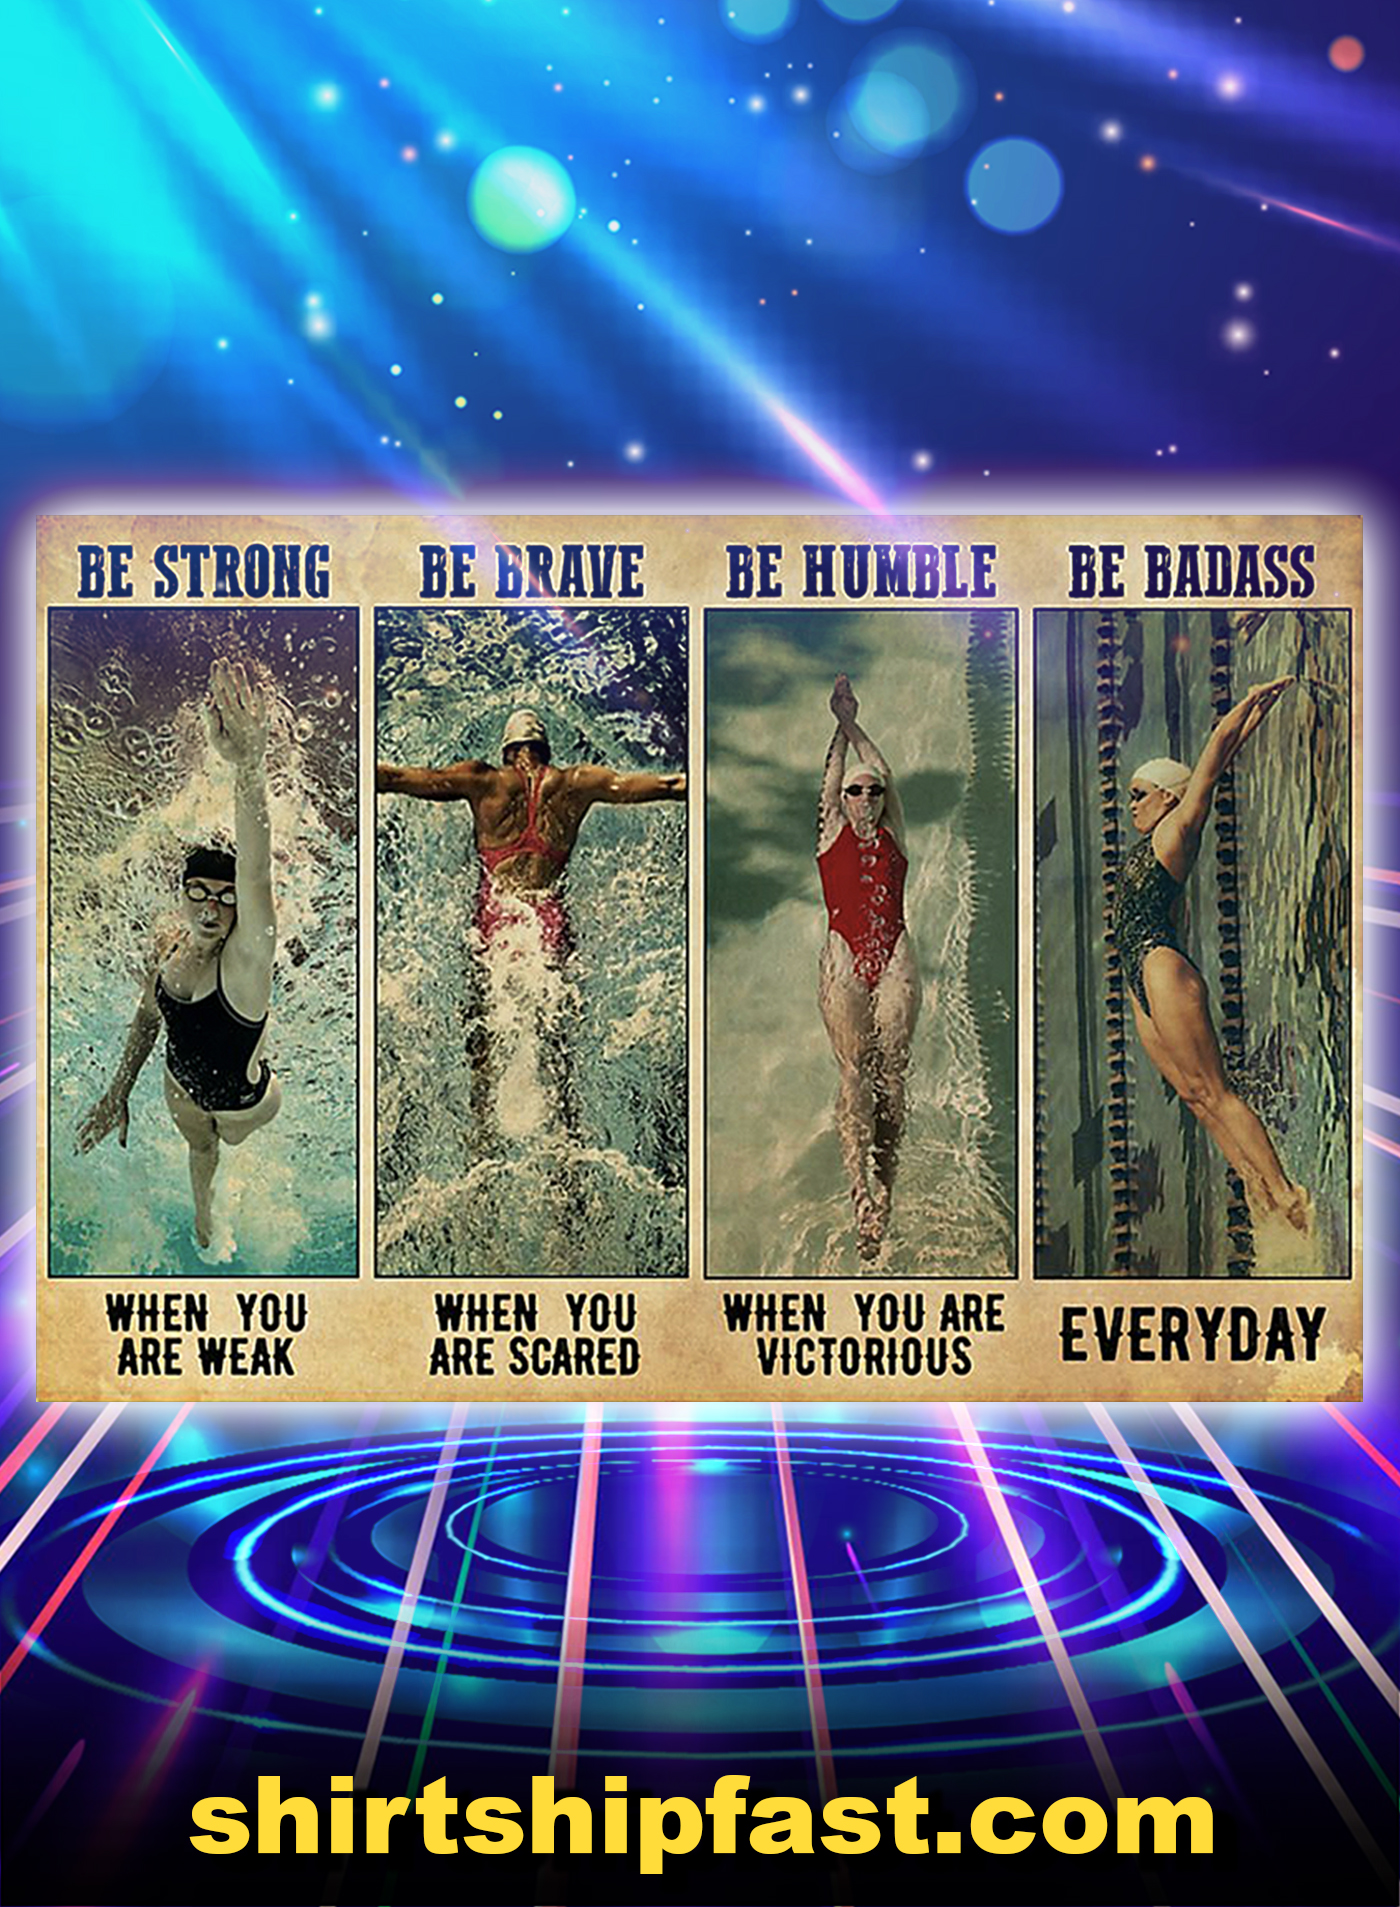 Be strong be brave be humble be badass swimming poster - A1